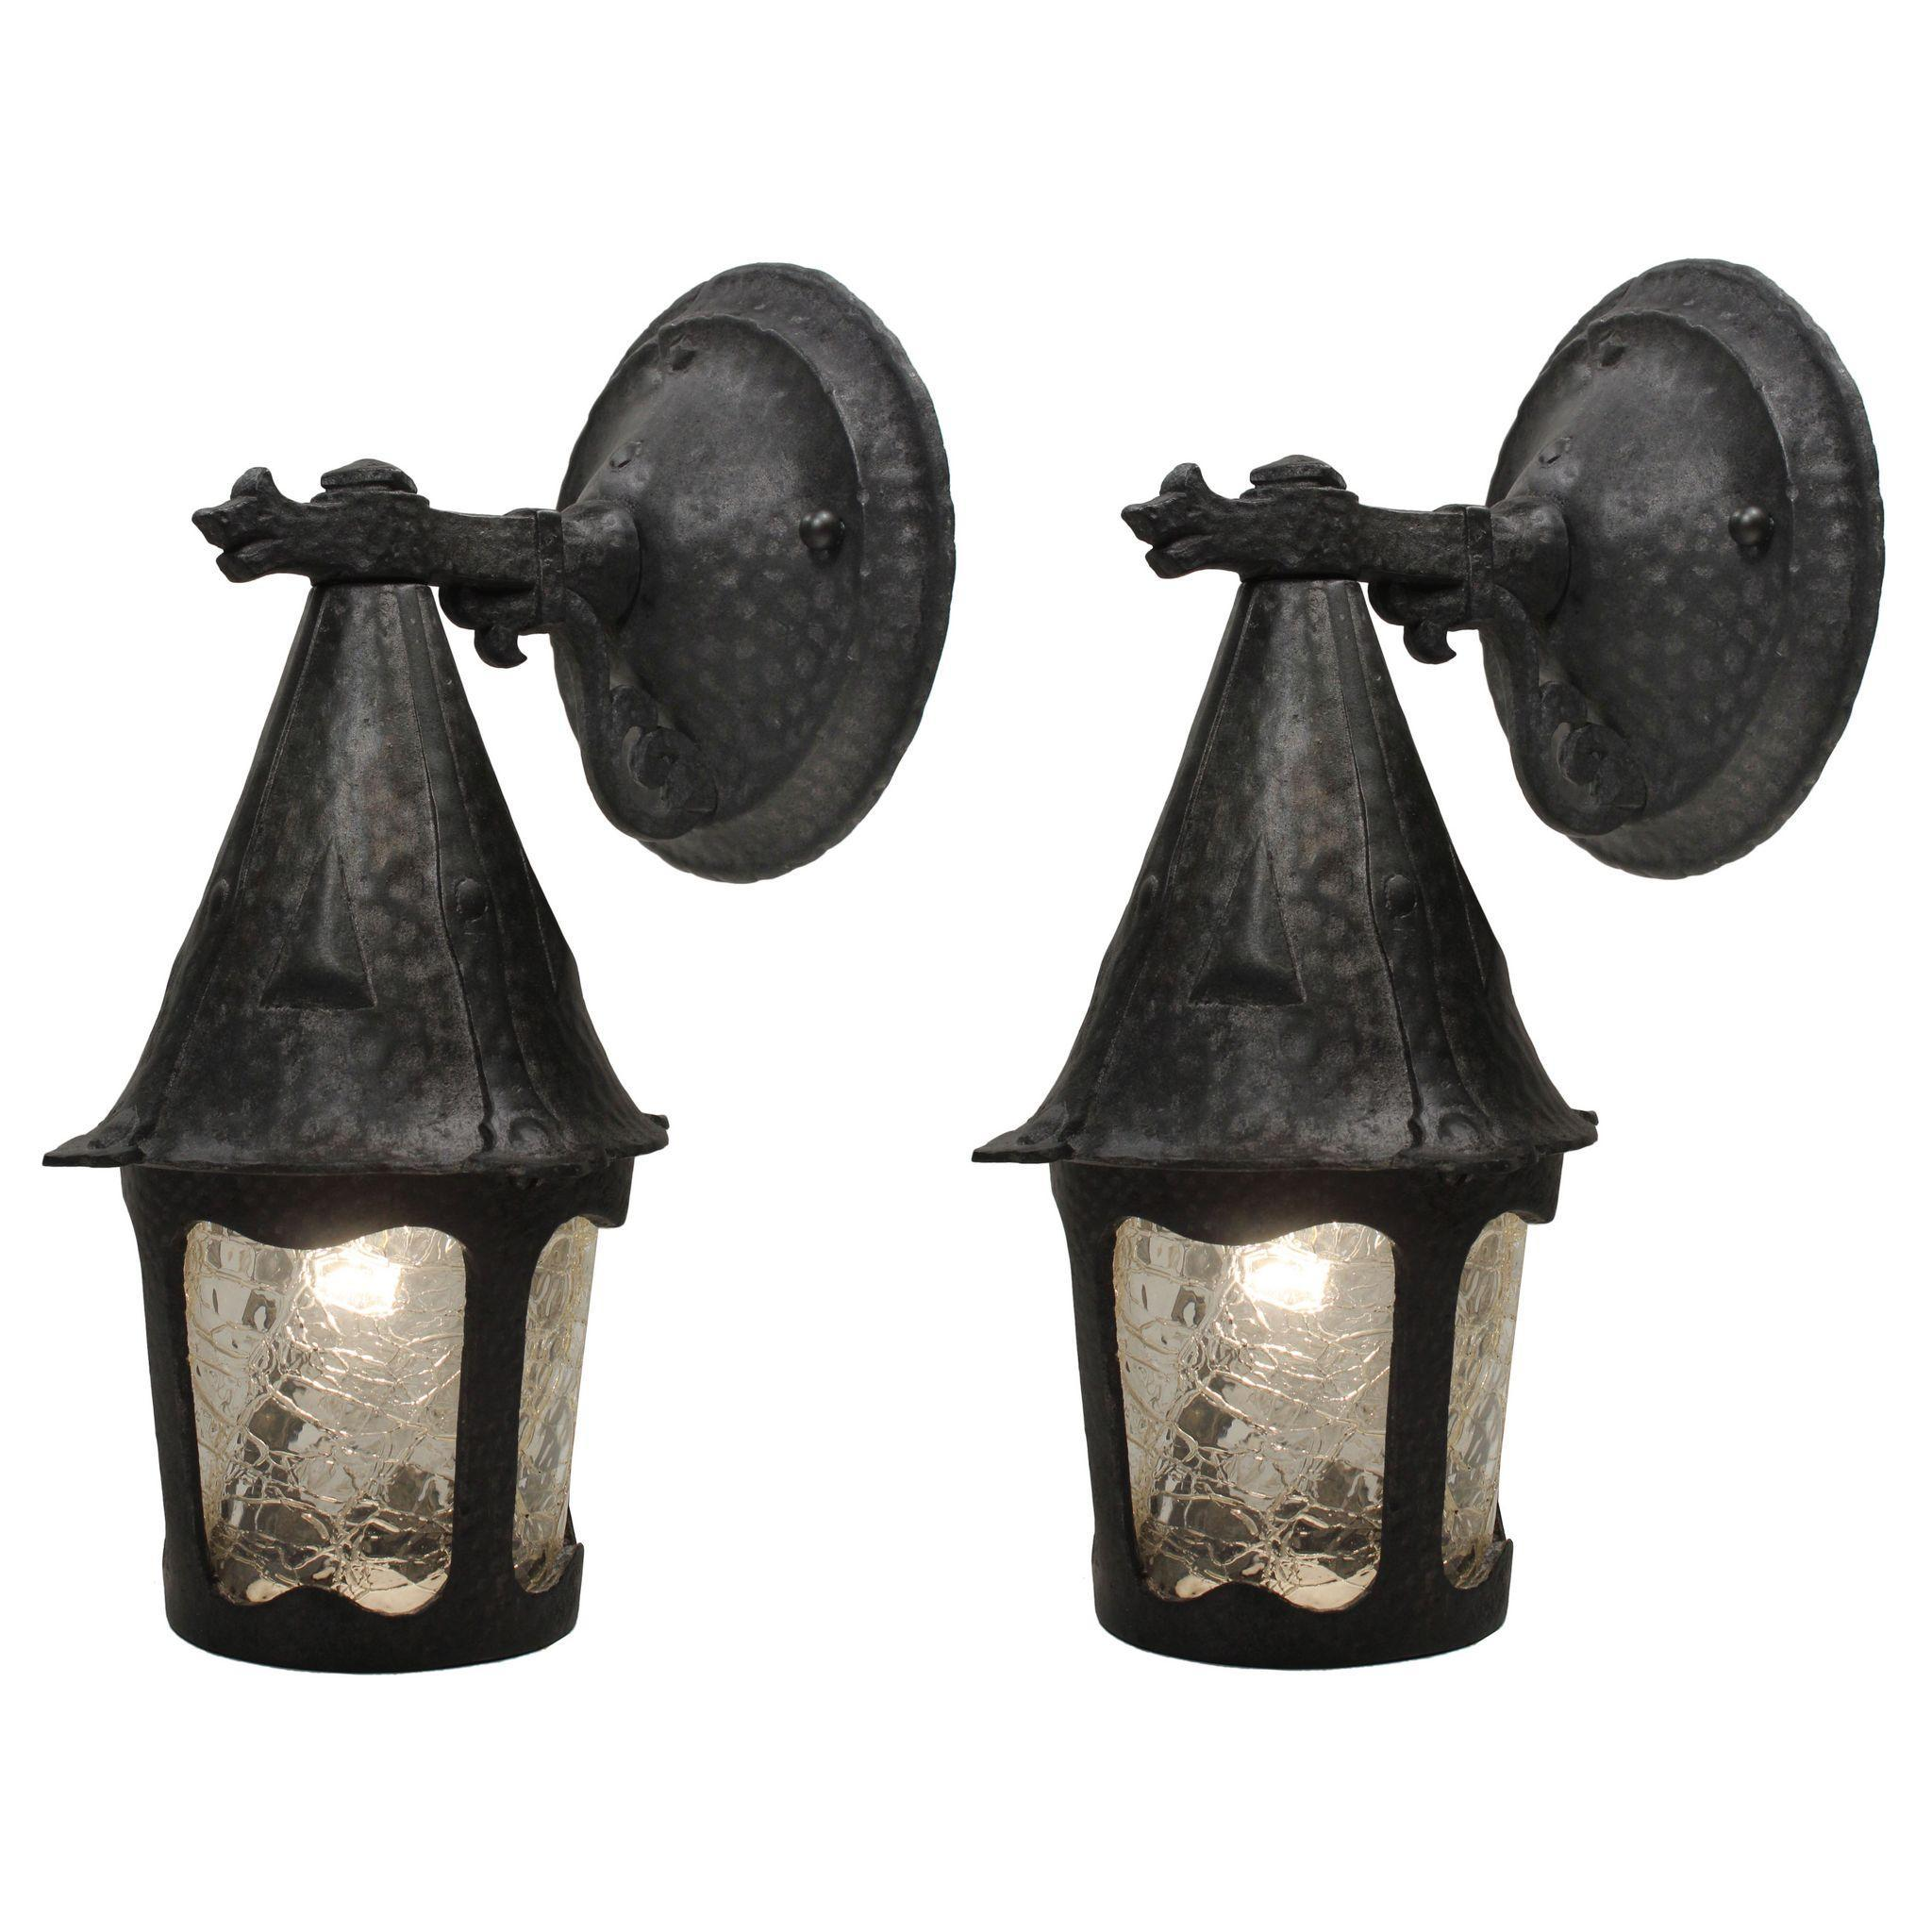 Tudor Lantern Sconce Pair with Figural Details, Antique Lighting